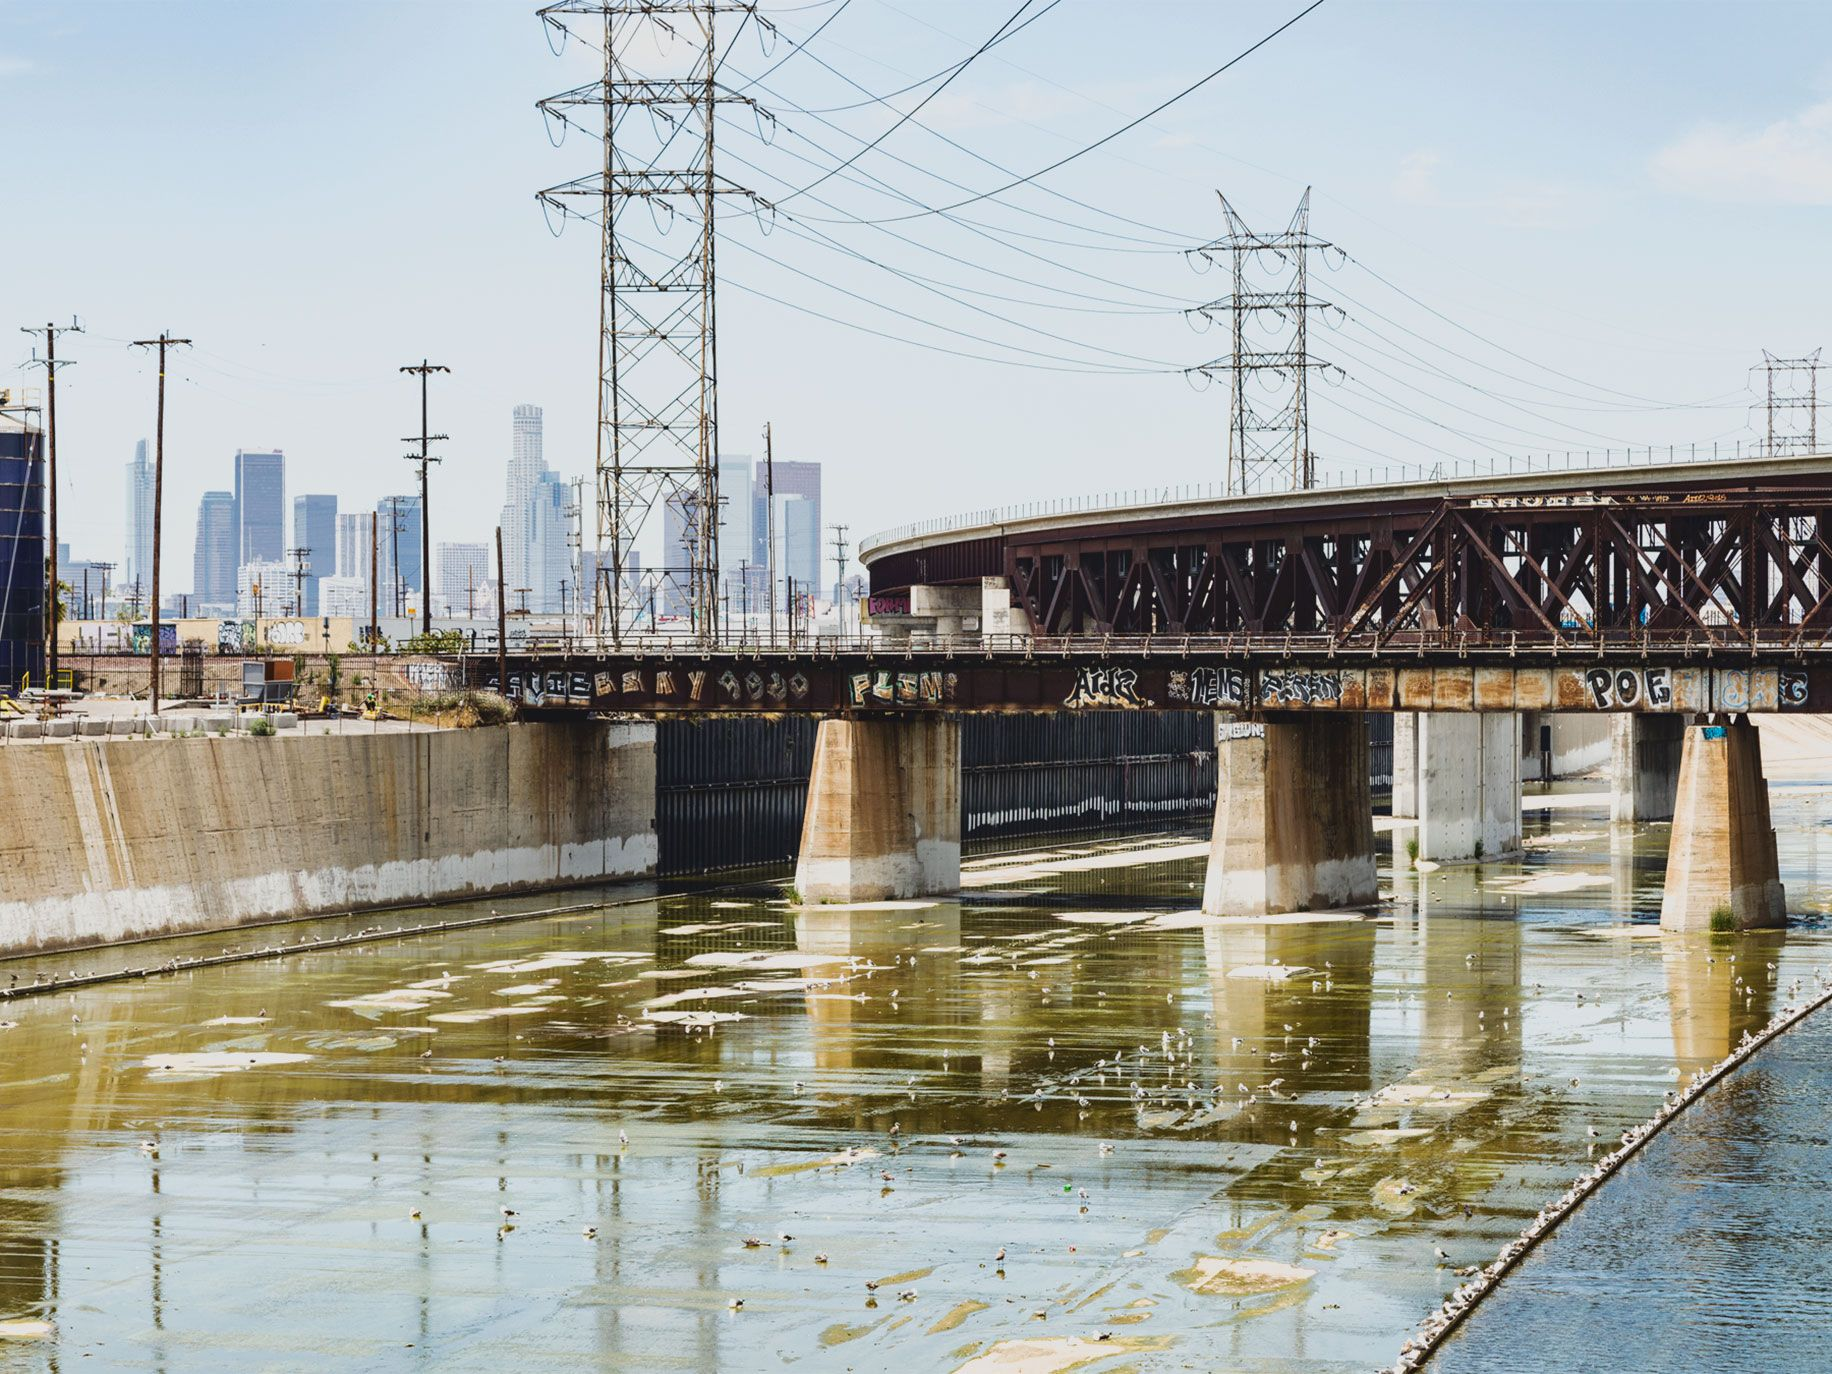 The Los Angeles River runs through an industrial area in Vernon, just south of downtown L.A.